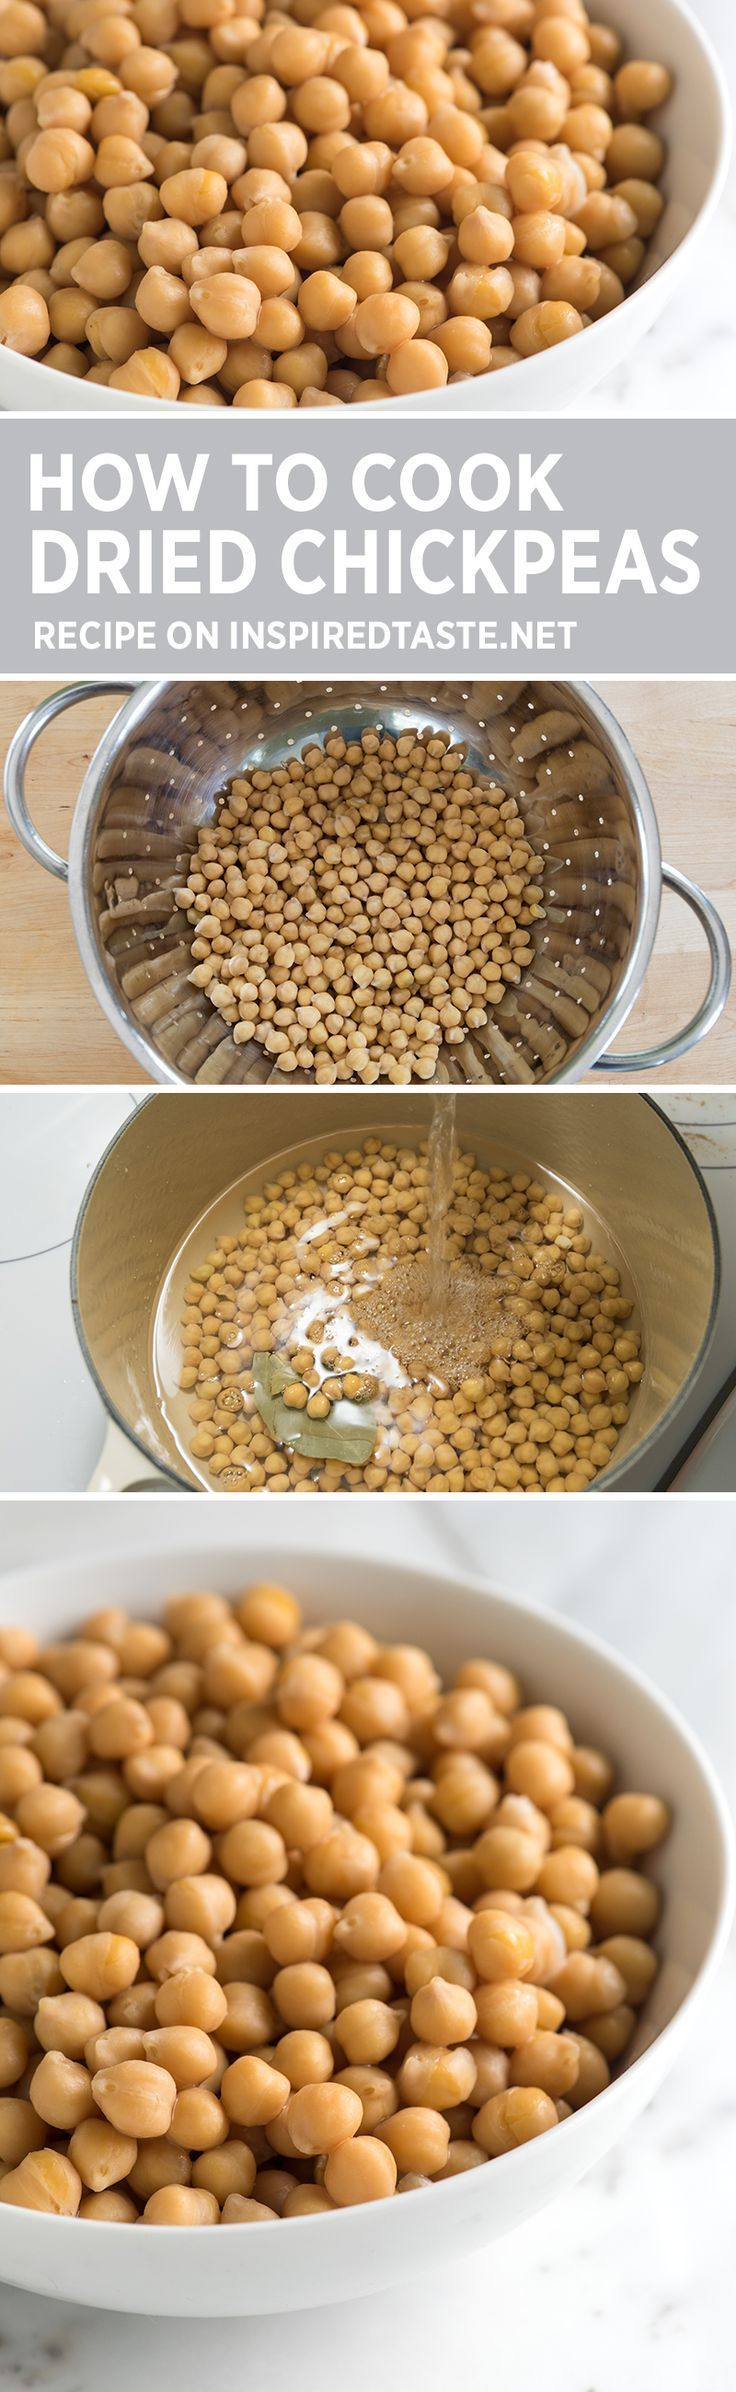 How to soak and cook chickpeas including cooking chickpeas in a slow cooker | recipe via @inspiredtaste